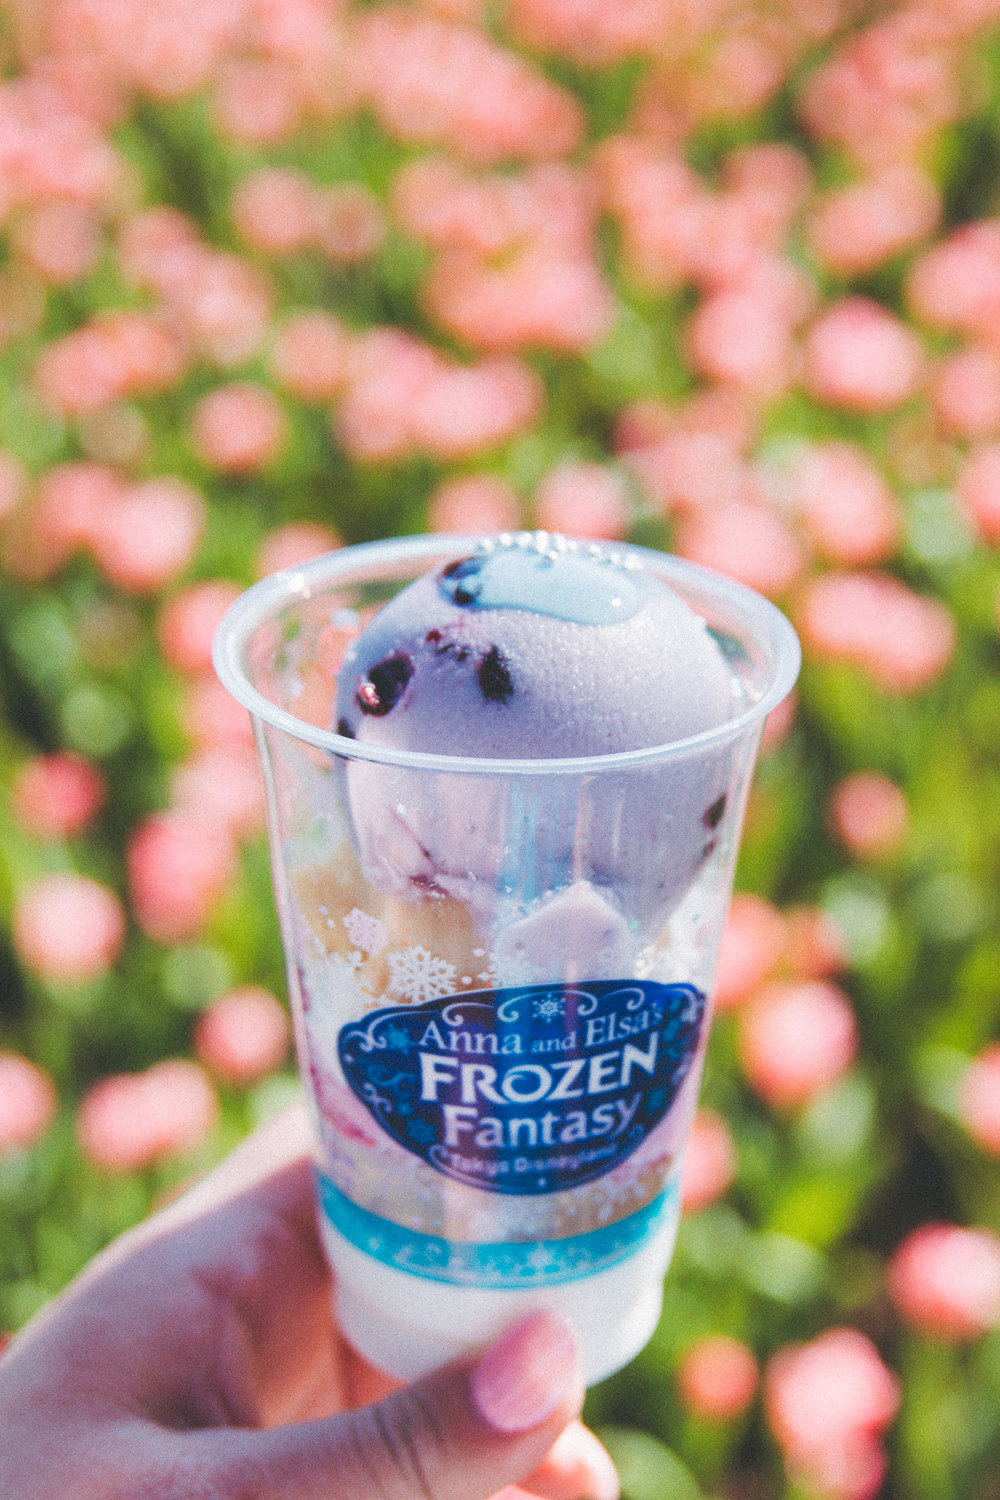 Frozen Fantasy Blueberry Cheesecake Sundae from Ice Cream Cone  (¥500) This sundae is a specialty event item and won't be available any longer, but the Ice Cream Cone has some delicious flavors. That blueberry ice cream was refreshing!